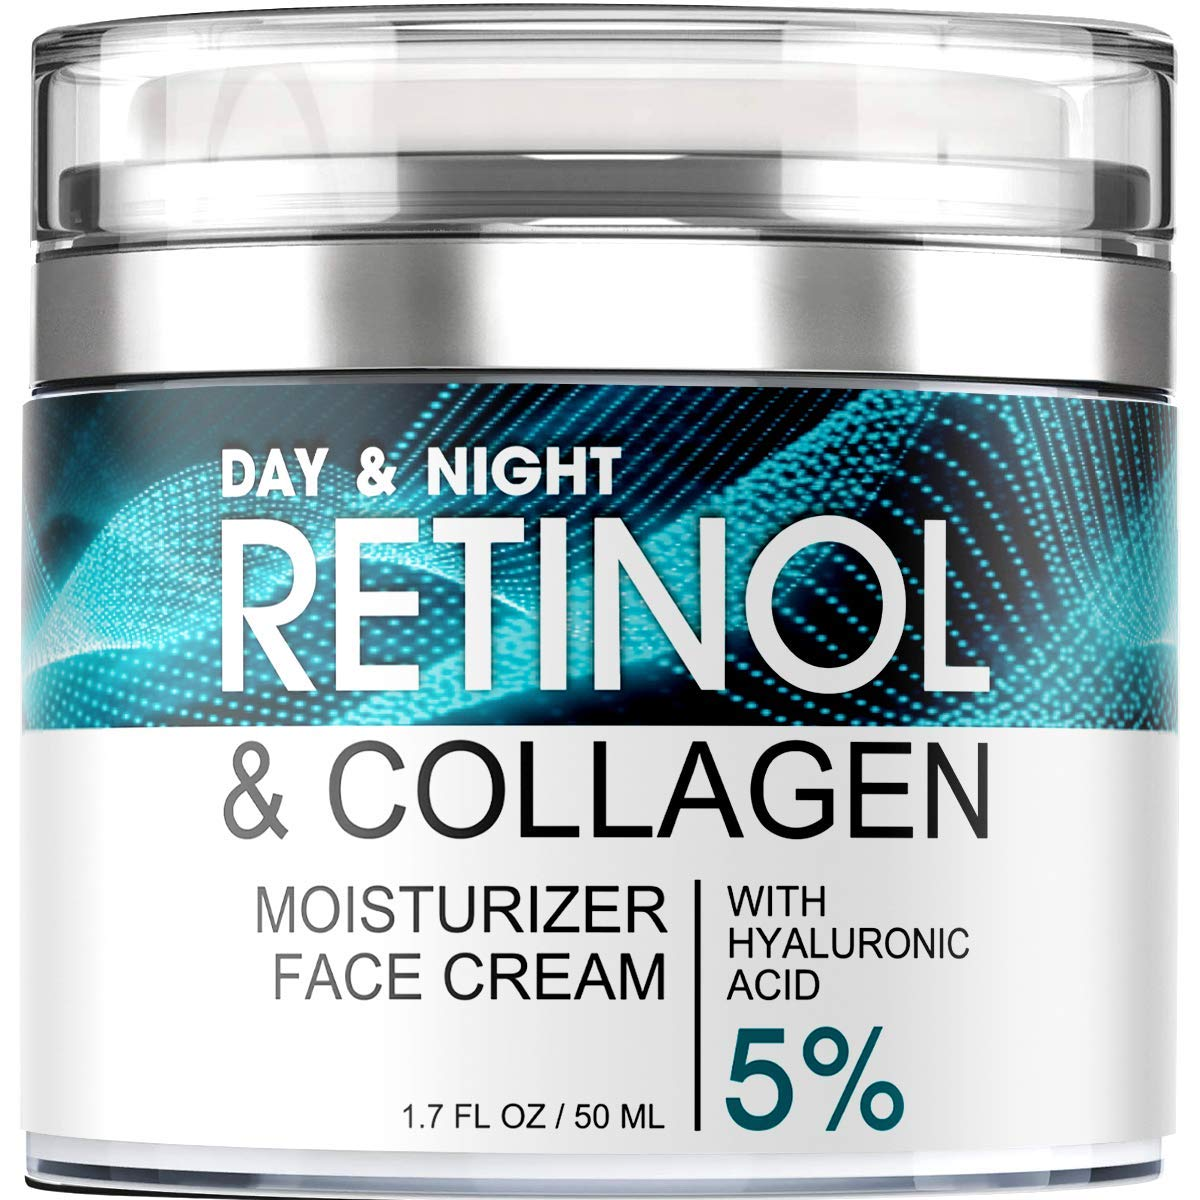 Remedial Retinol Face Cream; best anti-aging products for men